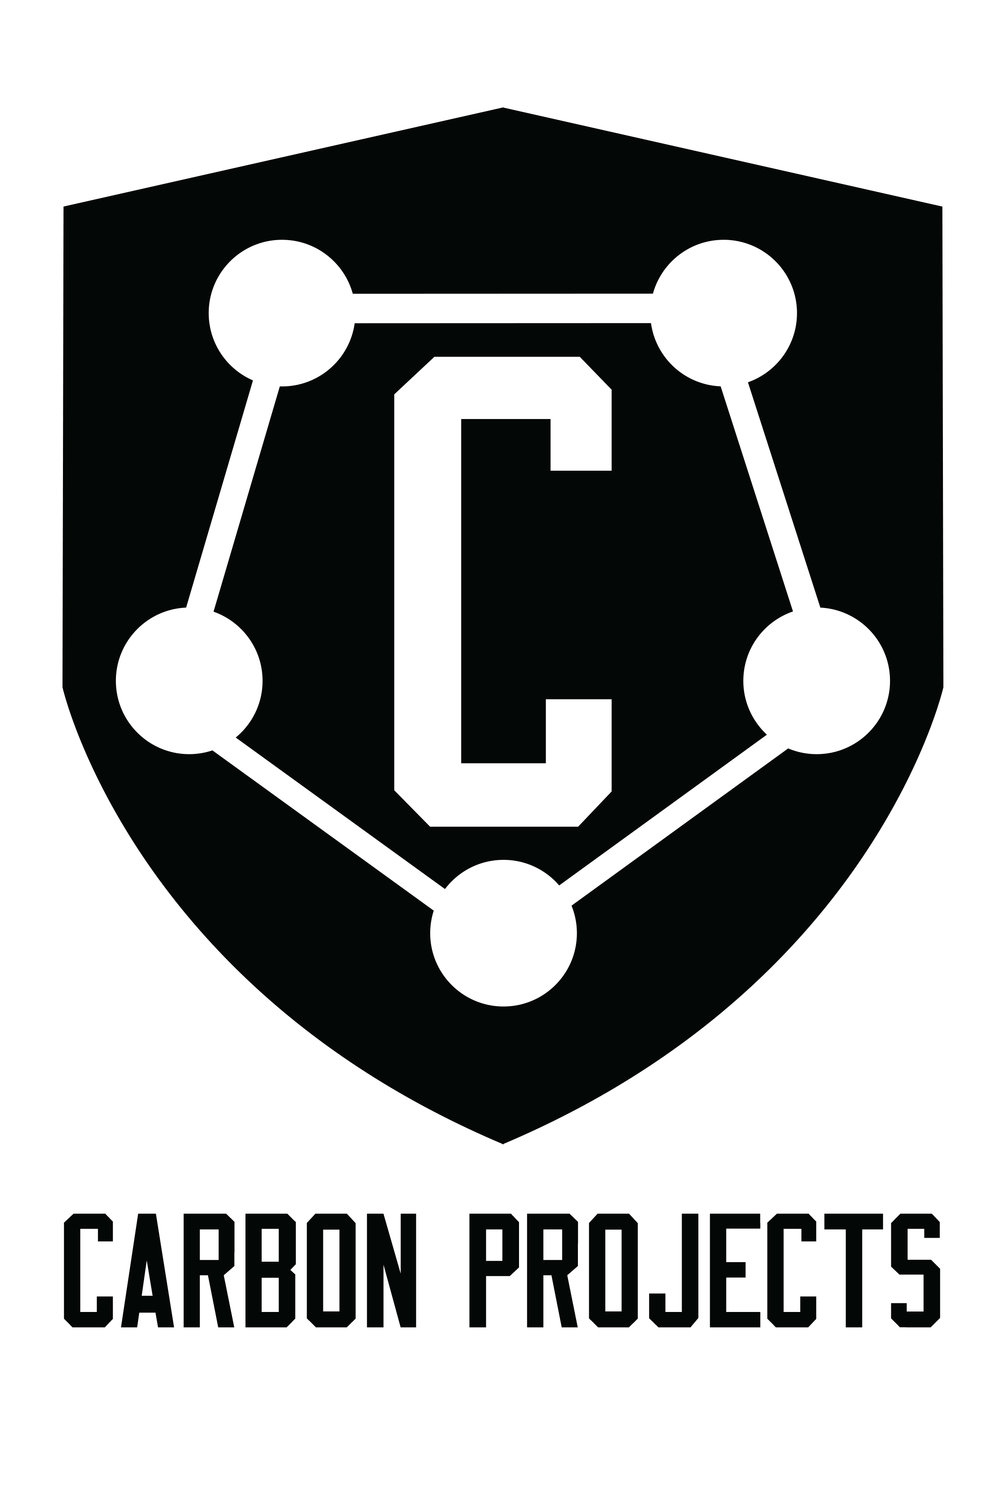 CARBON PROJECTS - Motorcycle and Industrial Design services